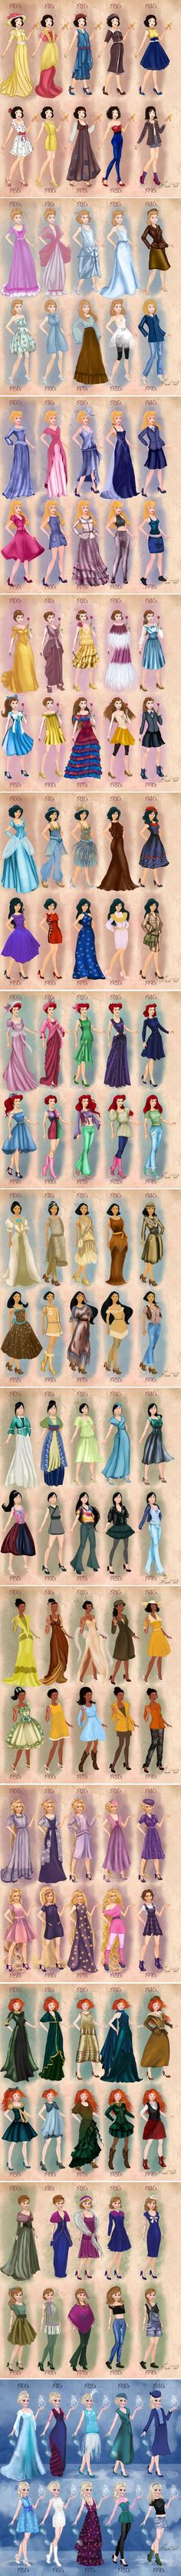 Disney princesses in 20th century clothing. I take some issue with the 1940s/1950s ones overall, but on the whole, pretty darn well done.